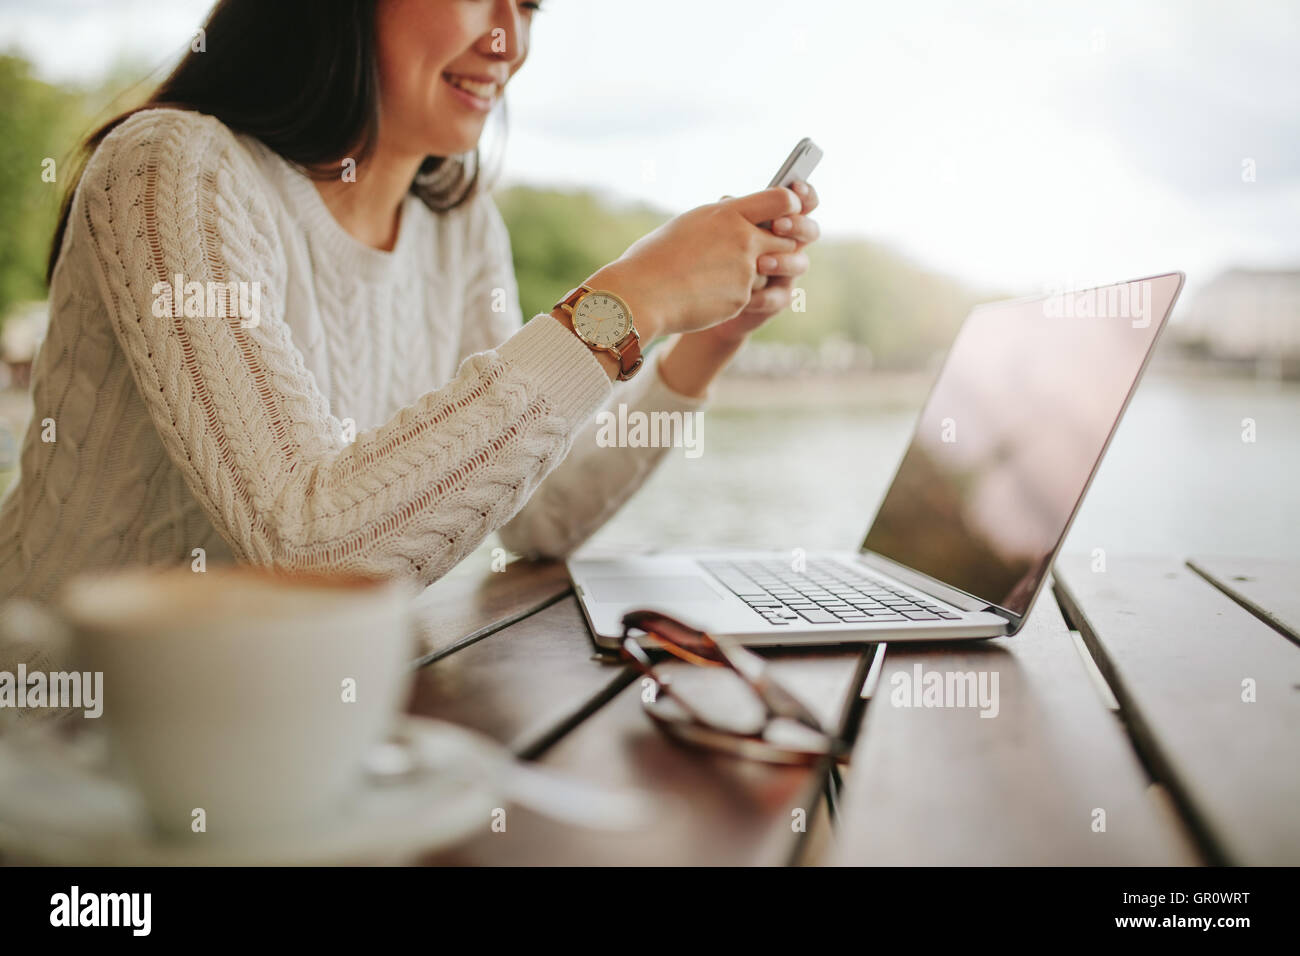 Cropped shot of young woman using mobile phone at outdoor cafe. Female sitting at table with laptop reading text - Stock Image